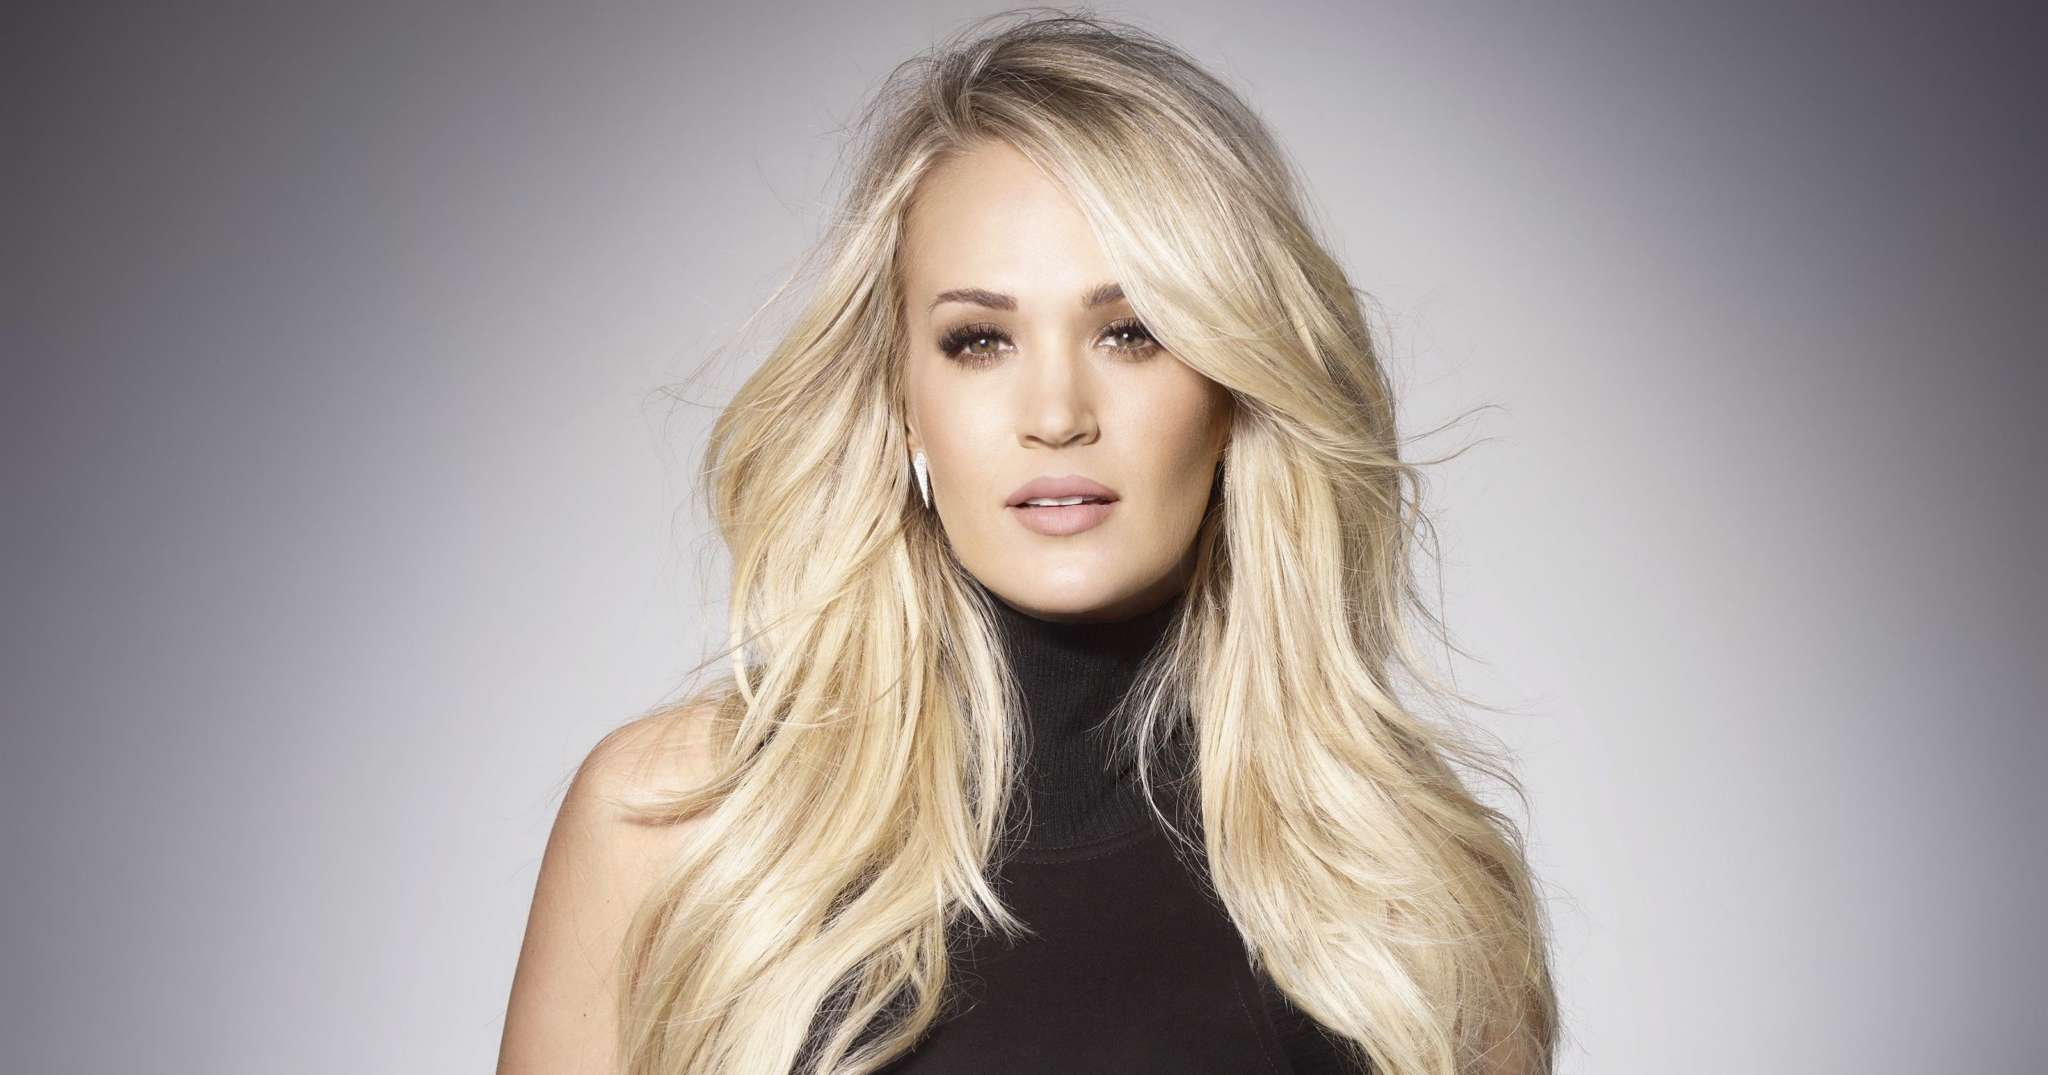 """carrie-underwood-says-she-kind-of-gave-up-on-her-faith-after-suffering-multiple-miscarriages"""